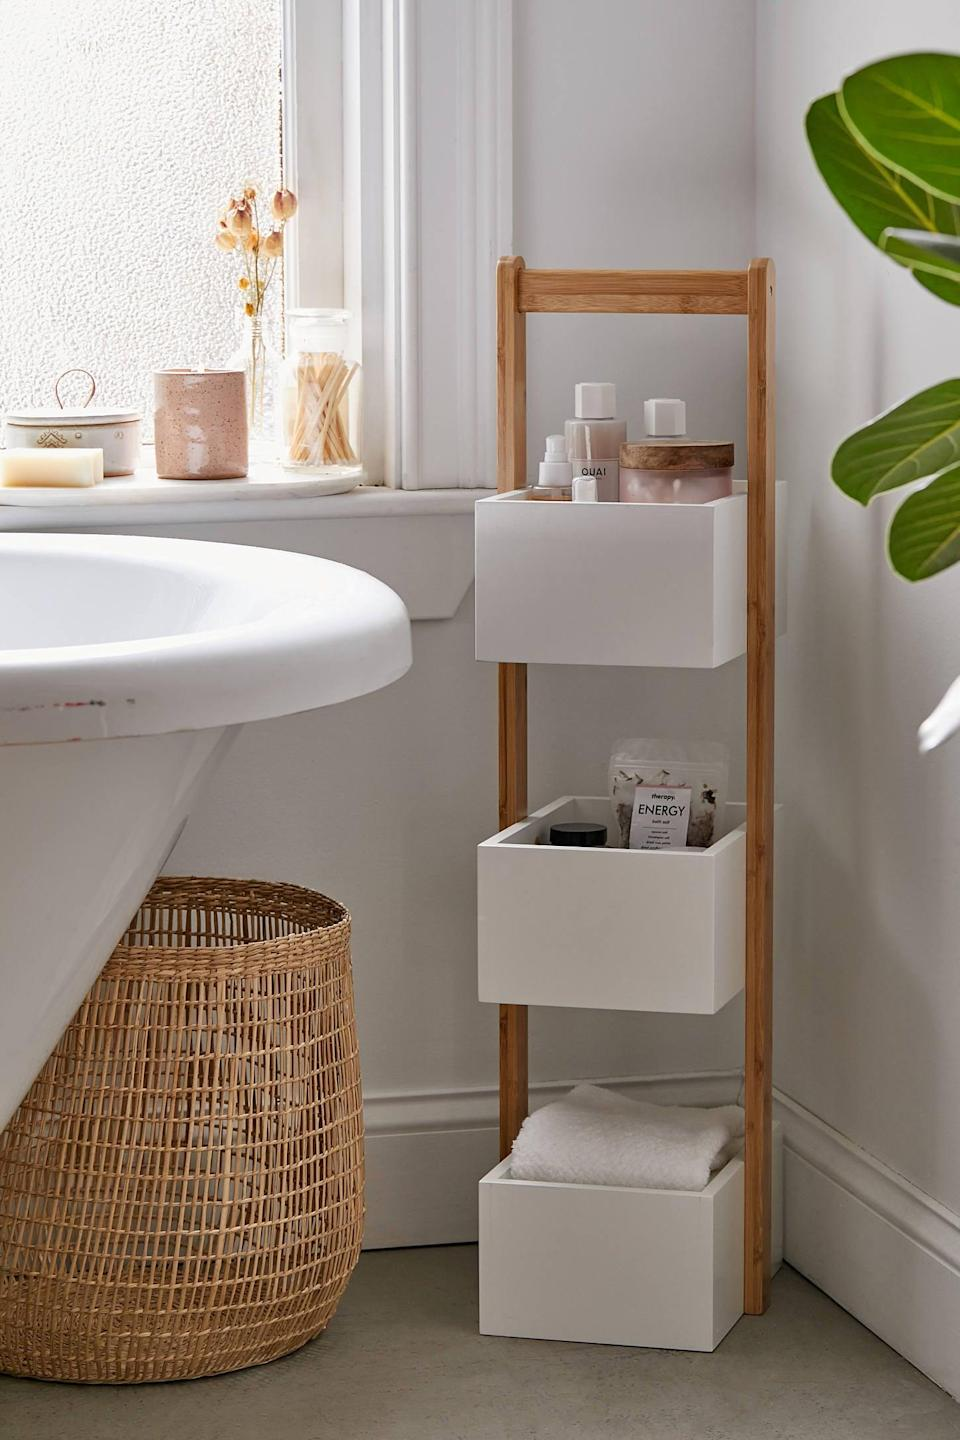 "<p>This <a href=""https://www.popsugar.com/buy/3-Tier-Bamboo-Bath-Storage-Caddy-540307?p_name=3-Tier%20Bamboo%20Bath%20Storage%20Caddy&retailer=urbanoutfitters.com&pid=540307&price=129&evar1=casa%3Aus&evar9=47251564&evar98=https%3A%2F%2Fwww.popsugar.com%2Fhome%2Fphoto-gallery%2F47251564%2Fimage%2F47251612%2F3-Tier-Bamboo-Bath-Storage-Caddy&list1=cleaning%2Corganization%2Cspring%20cleaning%2Csmall%20space%20living%2Cbathrooms%2Chome%20organization&prop13=mobile&pdata=1"" class=""link rapid-noclick-resp"" rel=""nofollow noopener"" target=""_blank"" data-ylk=""slk:3-Tier Bamboo Bath Storage Caddy"">3-Tier Bamboo Bath Storage Caddy</a> ($129) is great for your daily products.</p>"